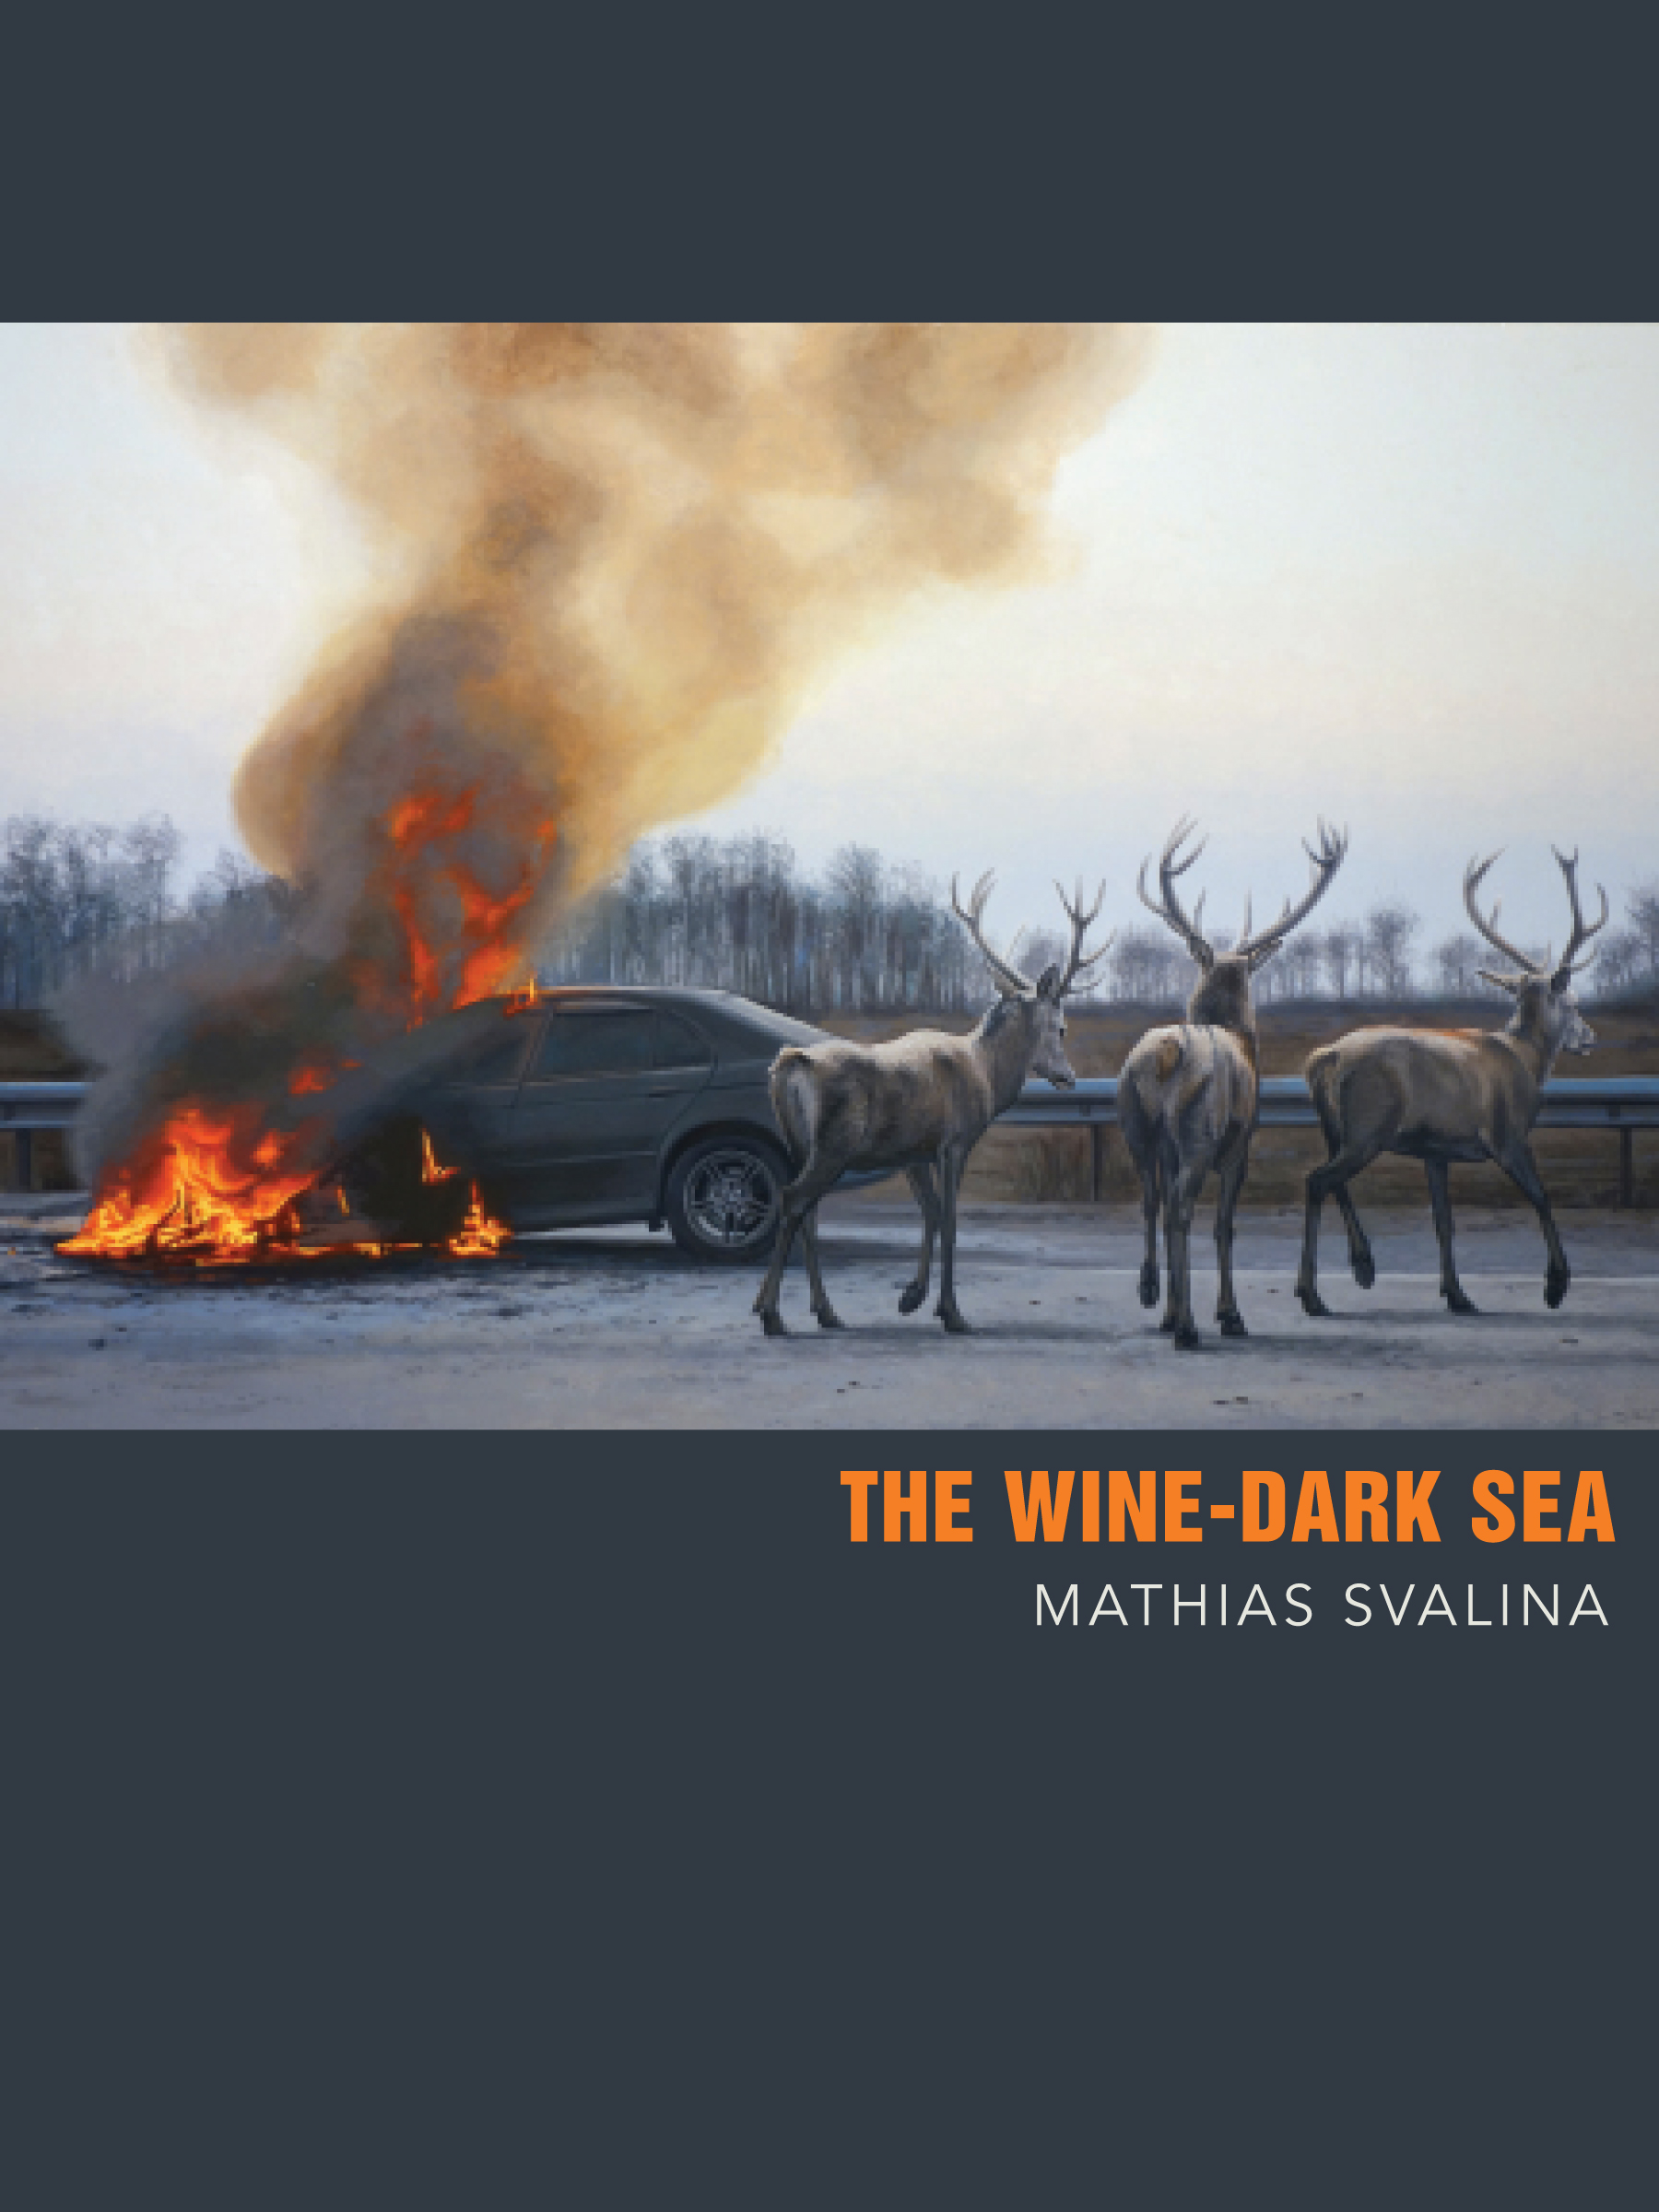 The Wine-Dark Sea by Mathias Svalina